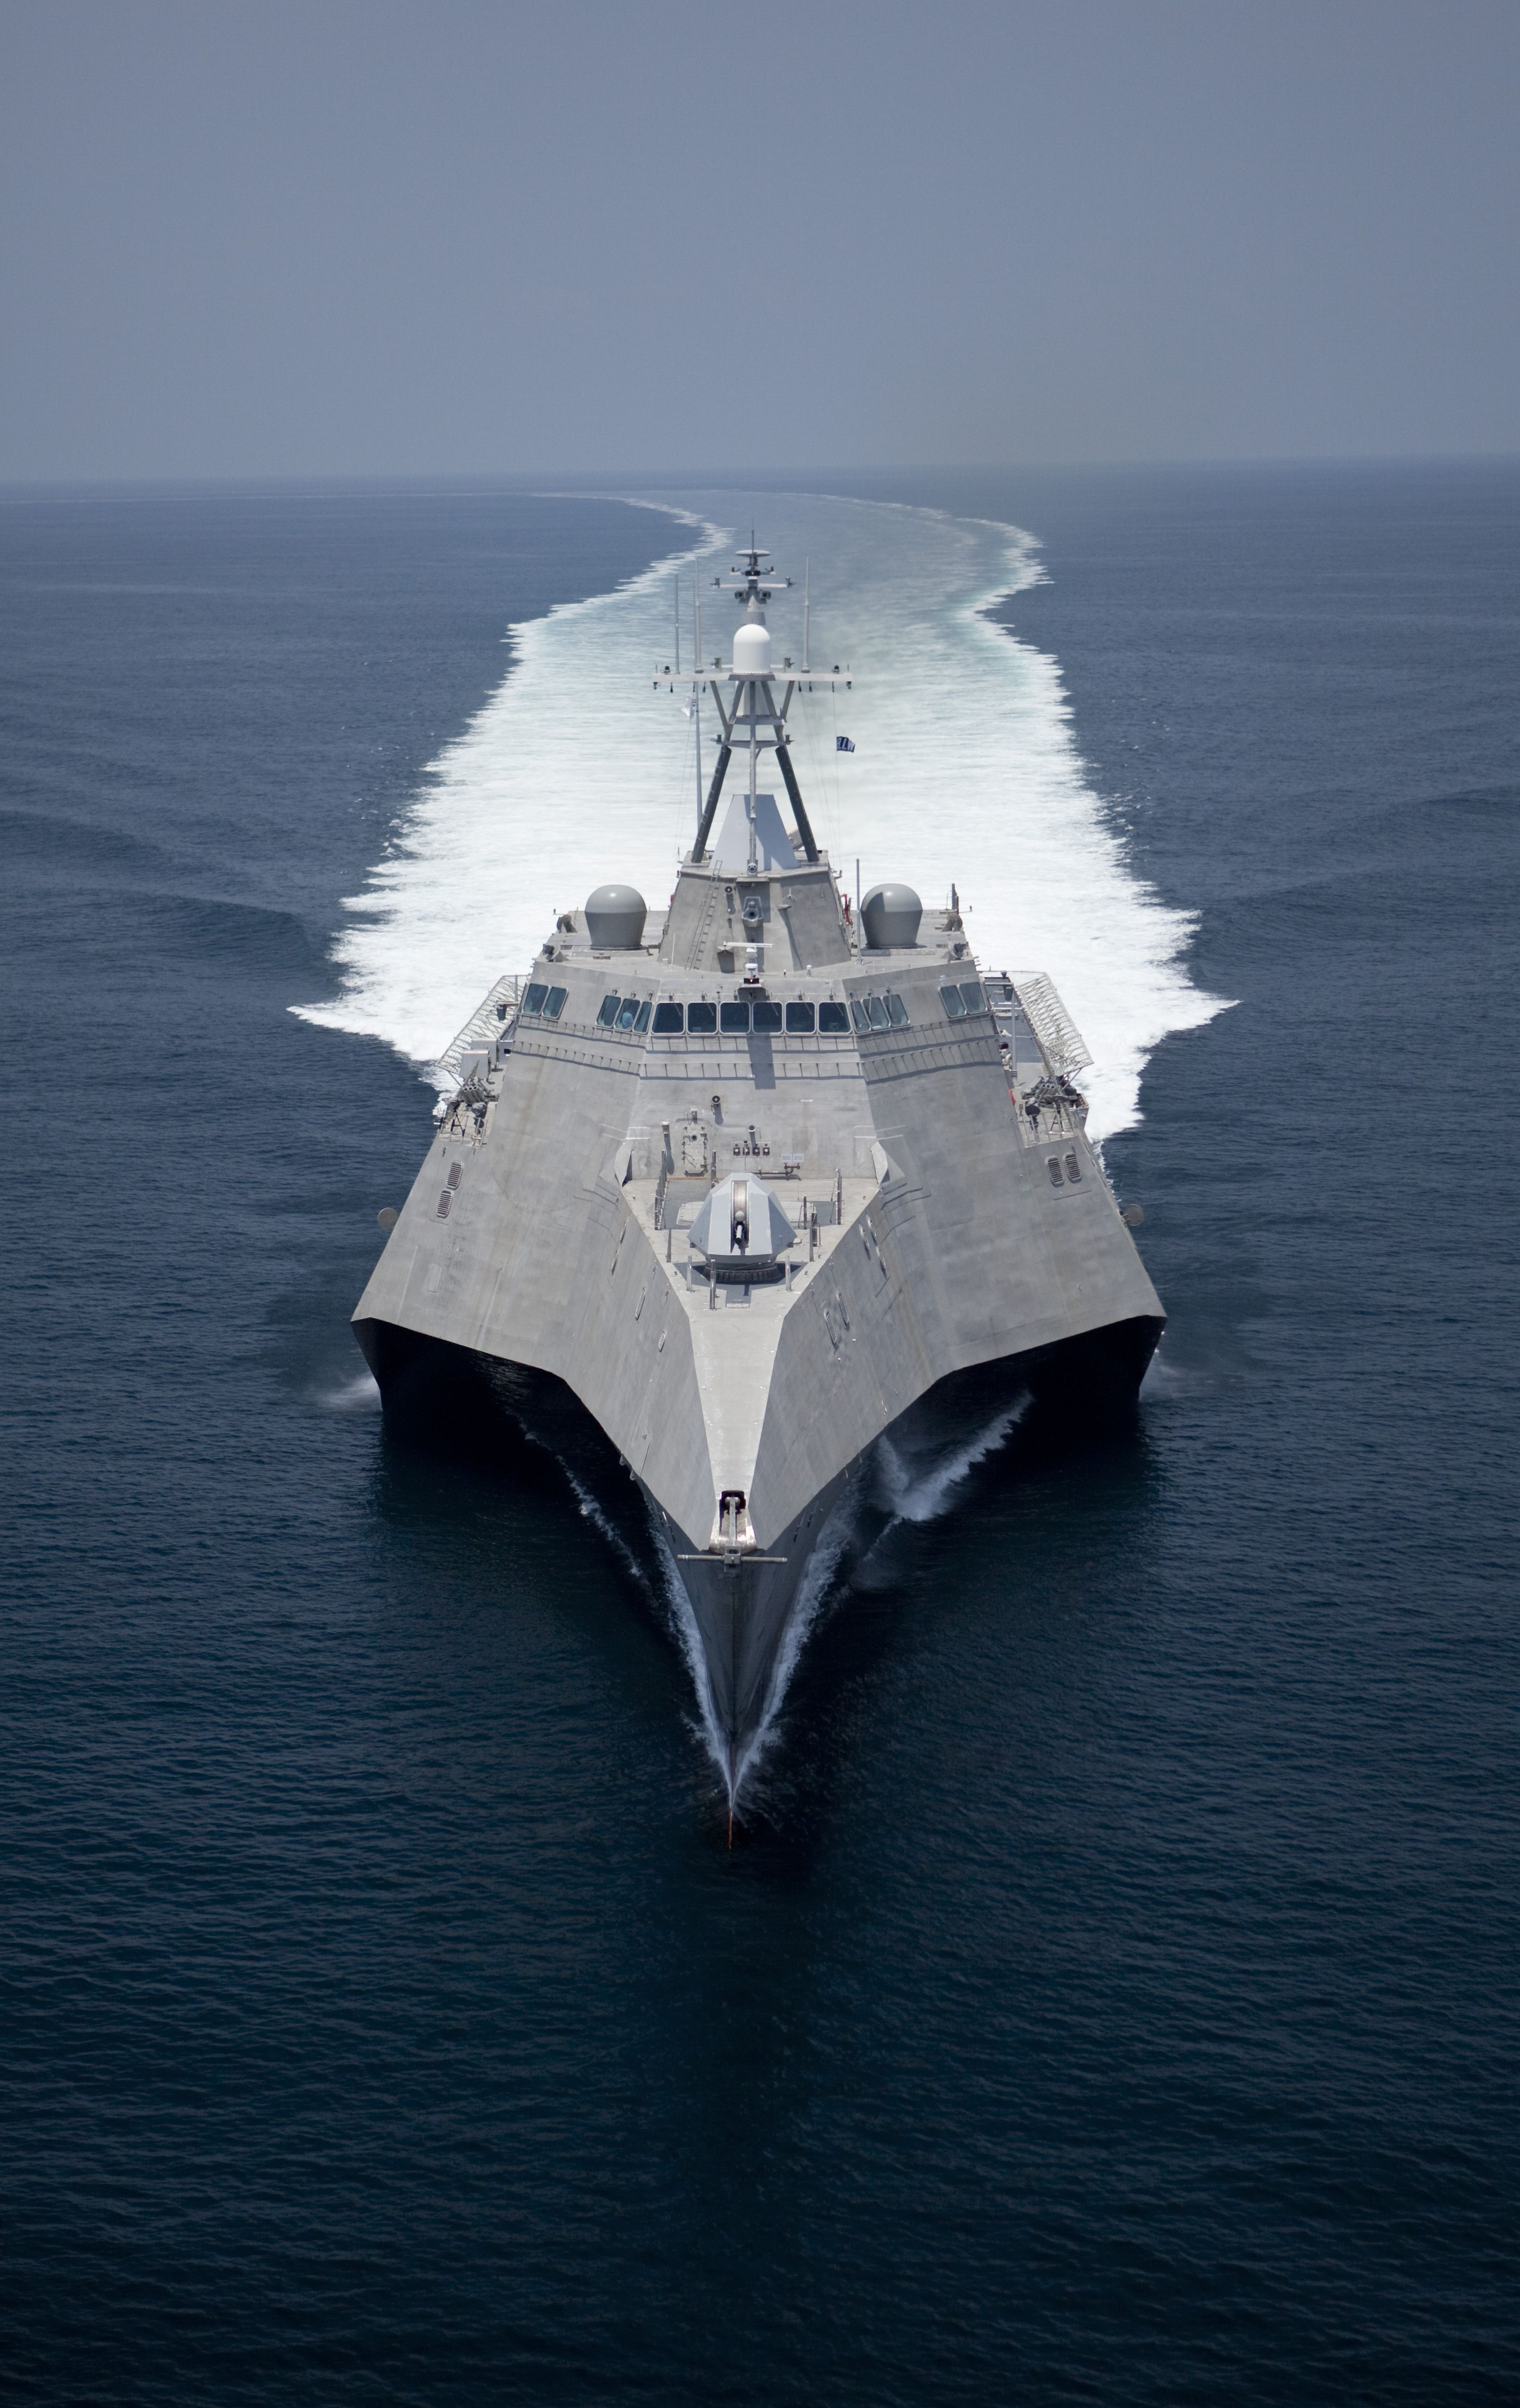 USS Freedom (LCS 1) | Weaponology | Pinterest | Lakes, Us ...